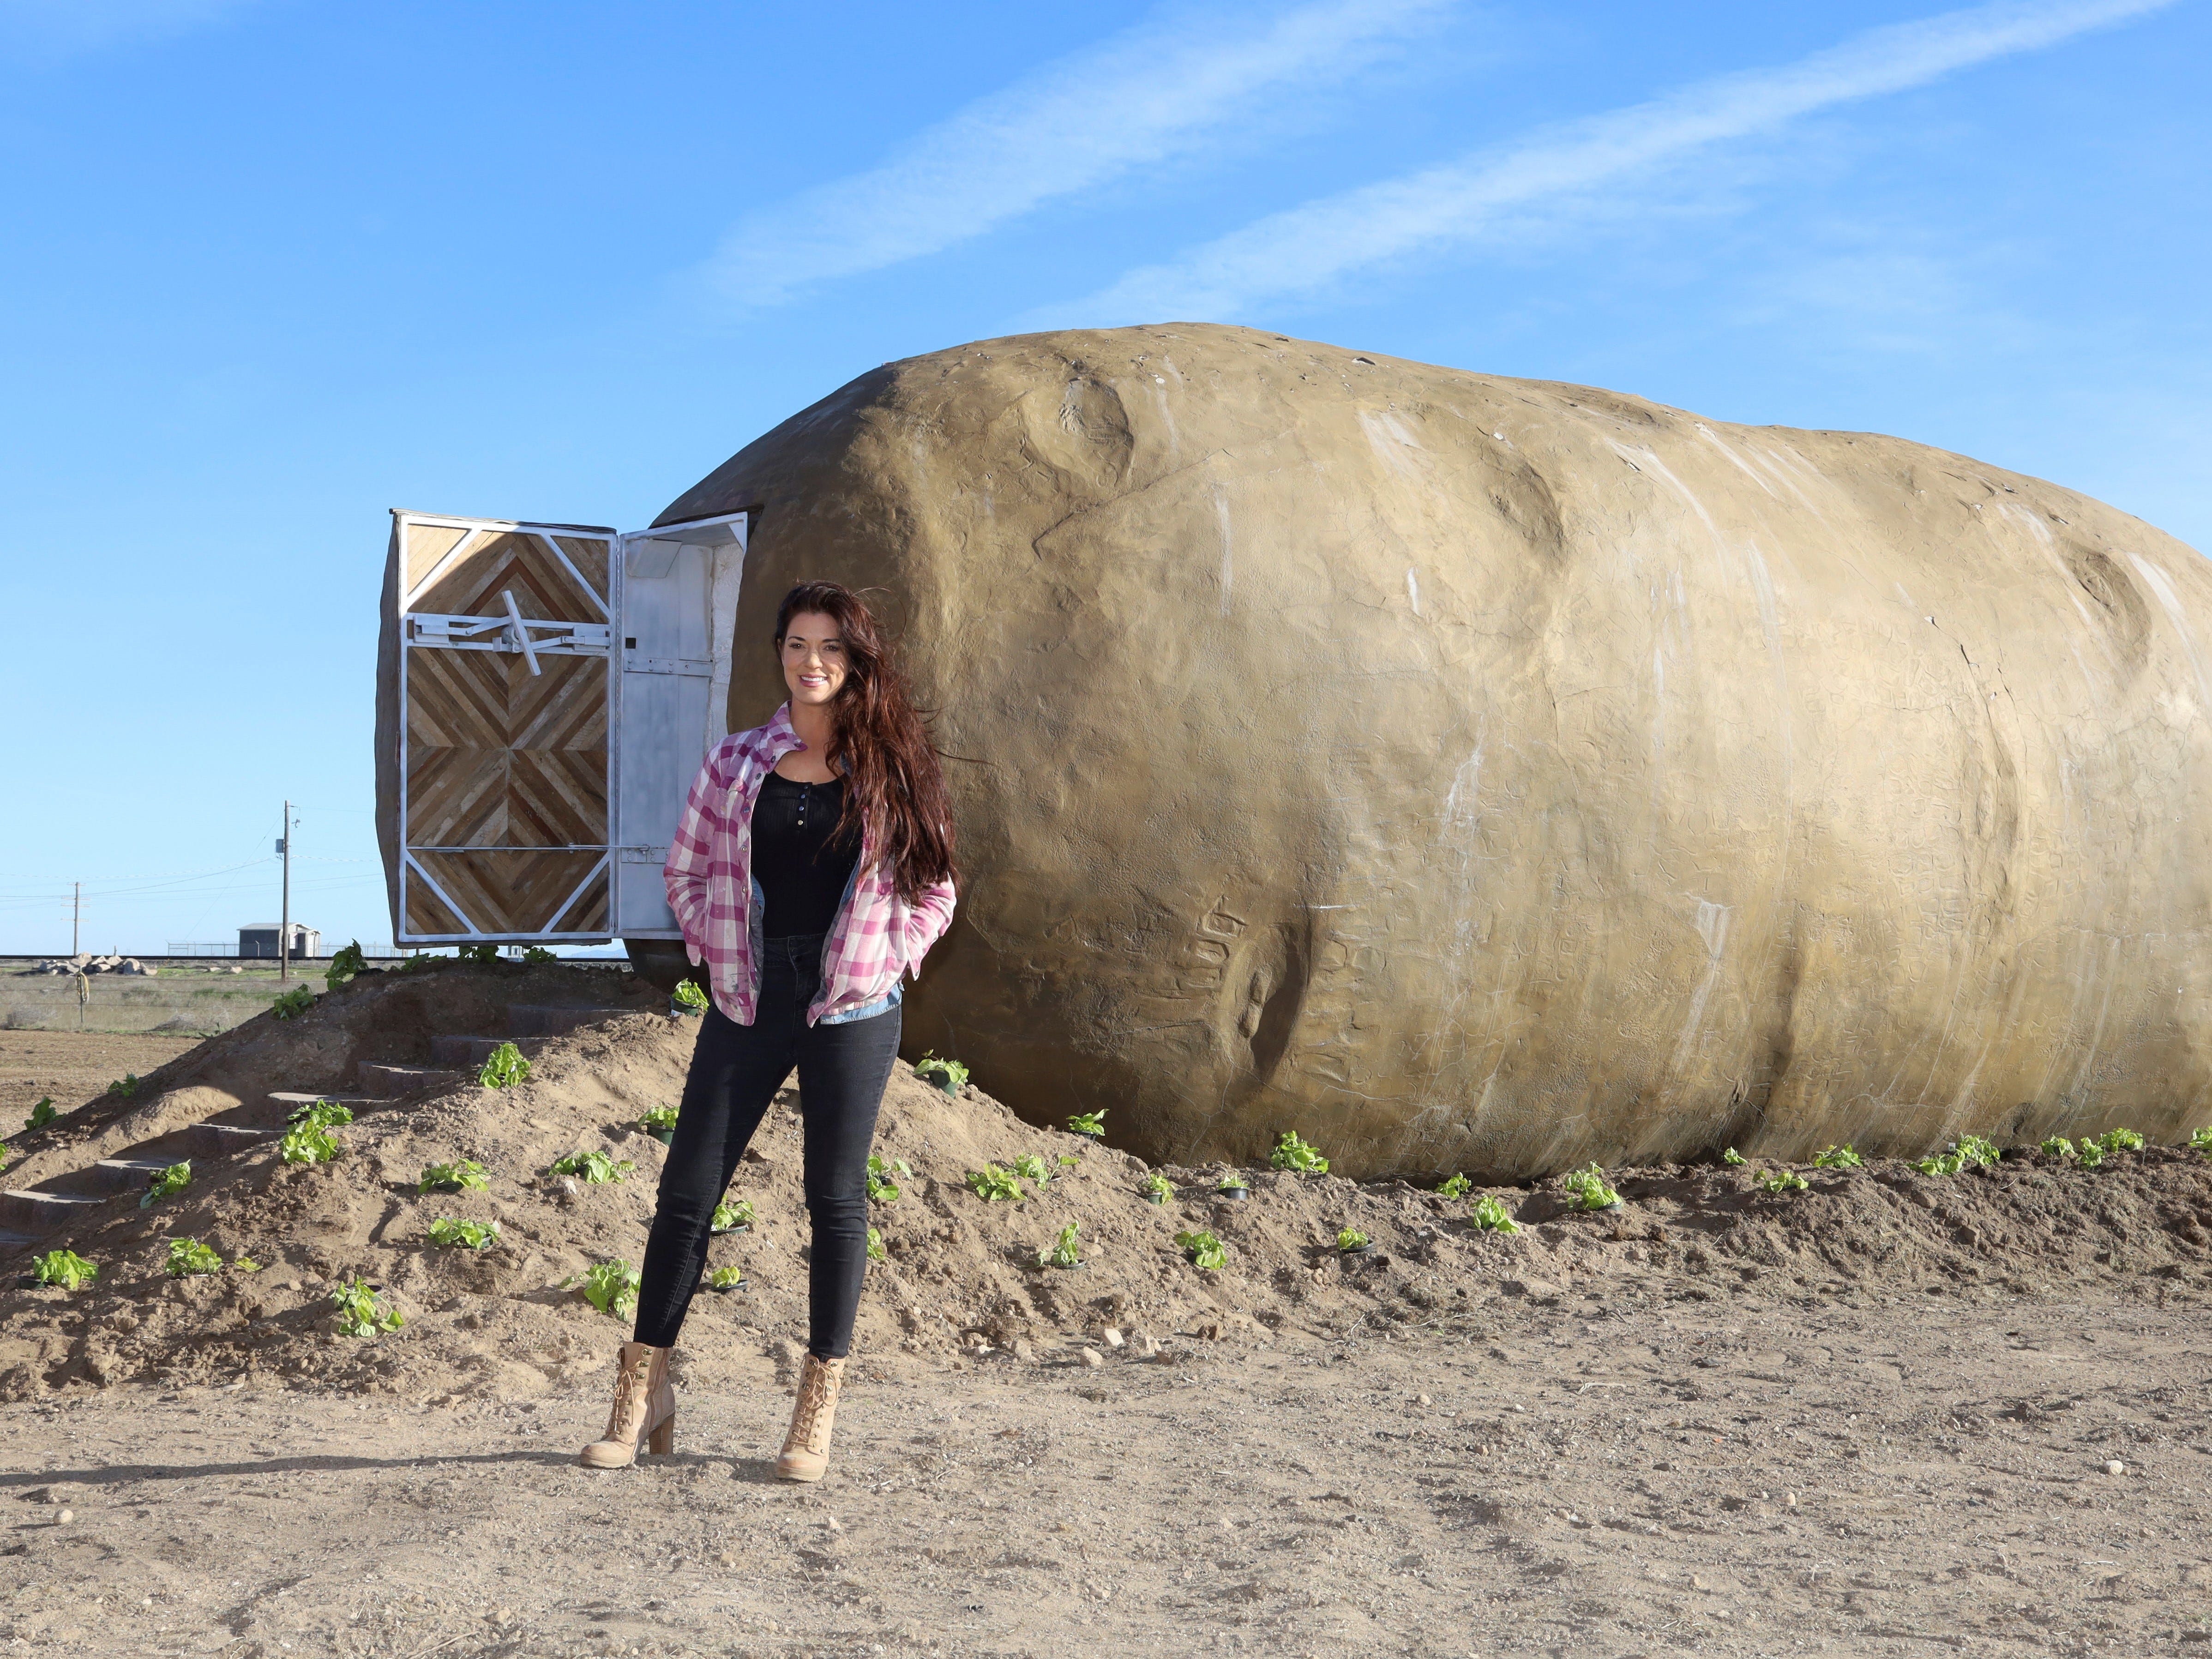 You can spend the night in a giant potato in Idaho